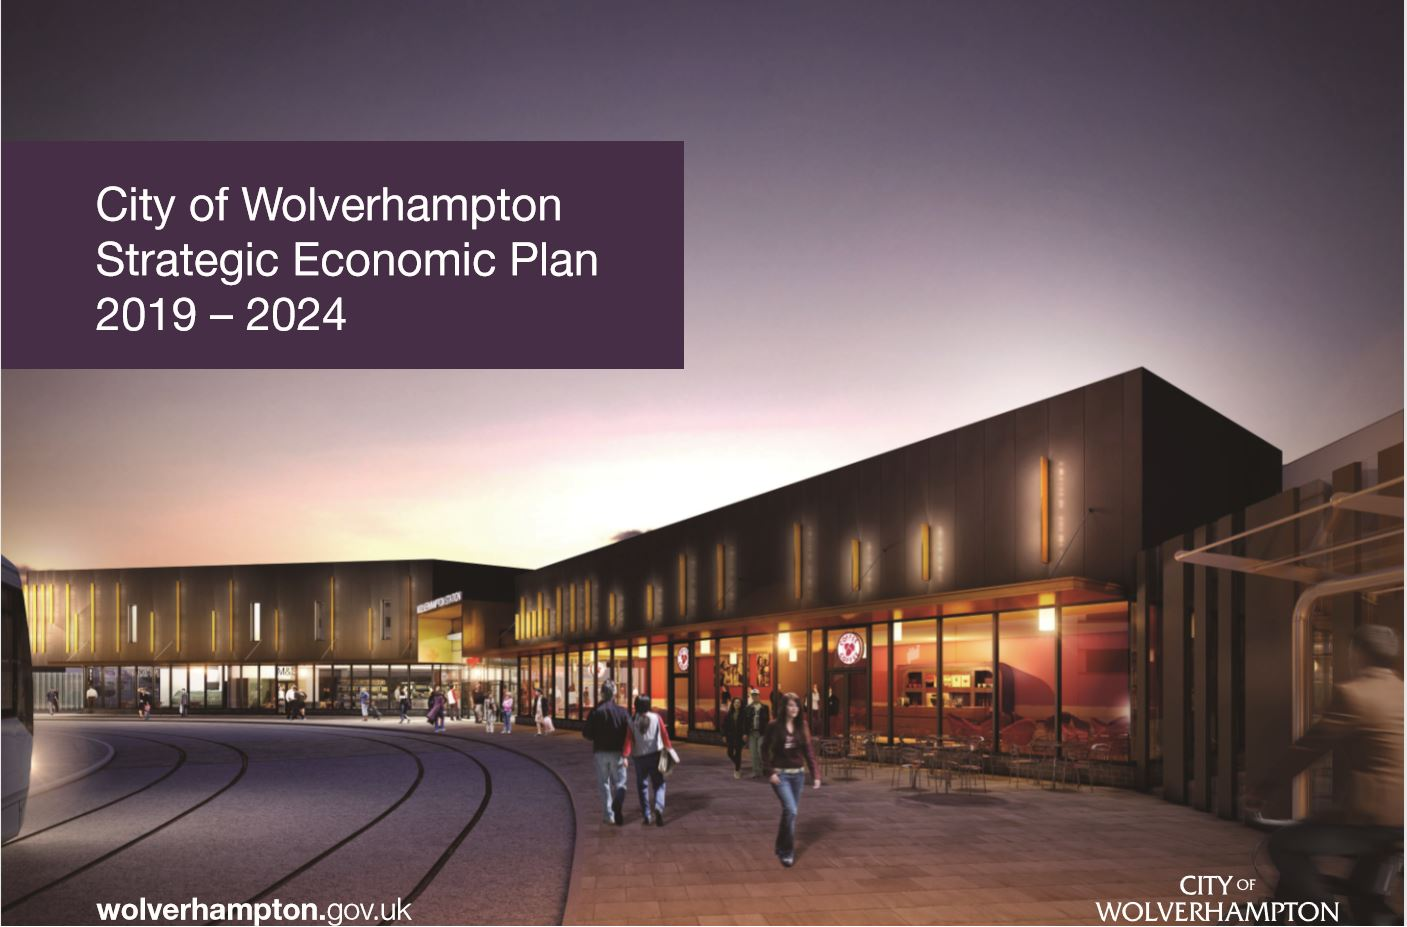 Have your say on city's new Strategic Economic Plan